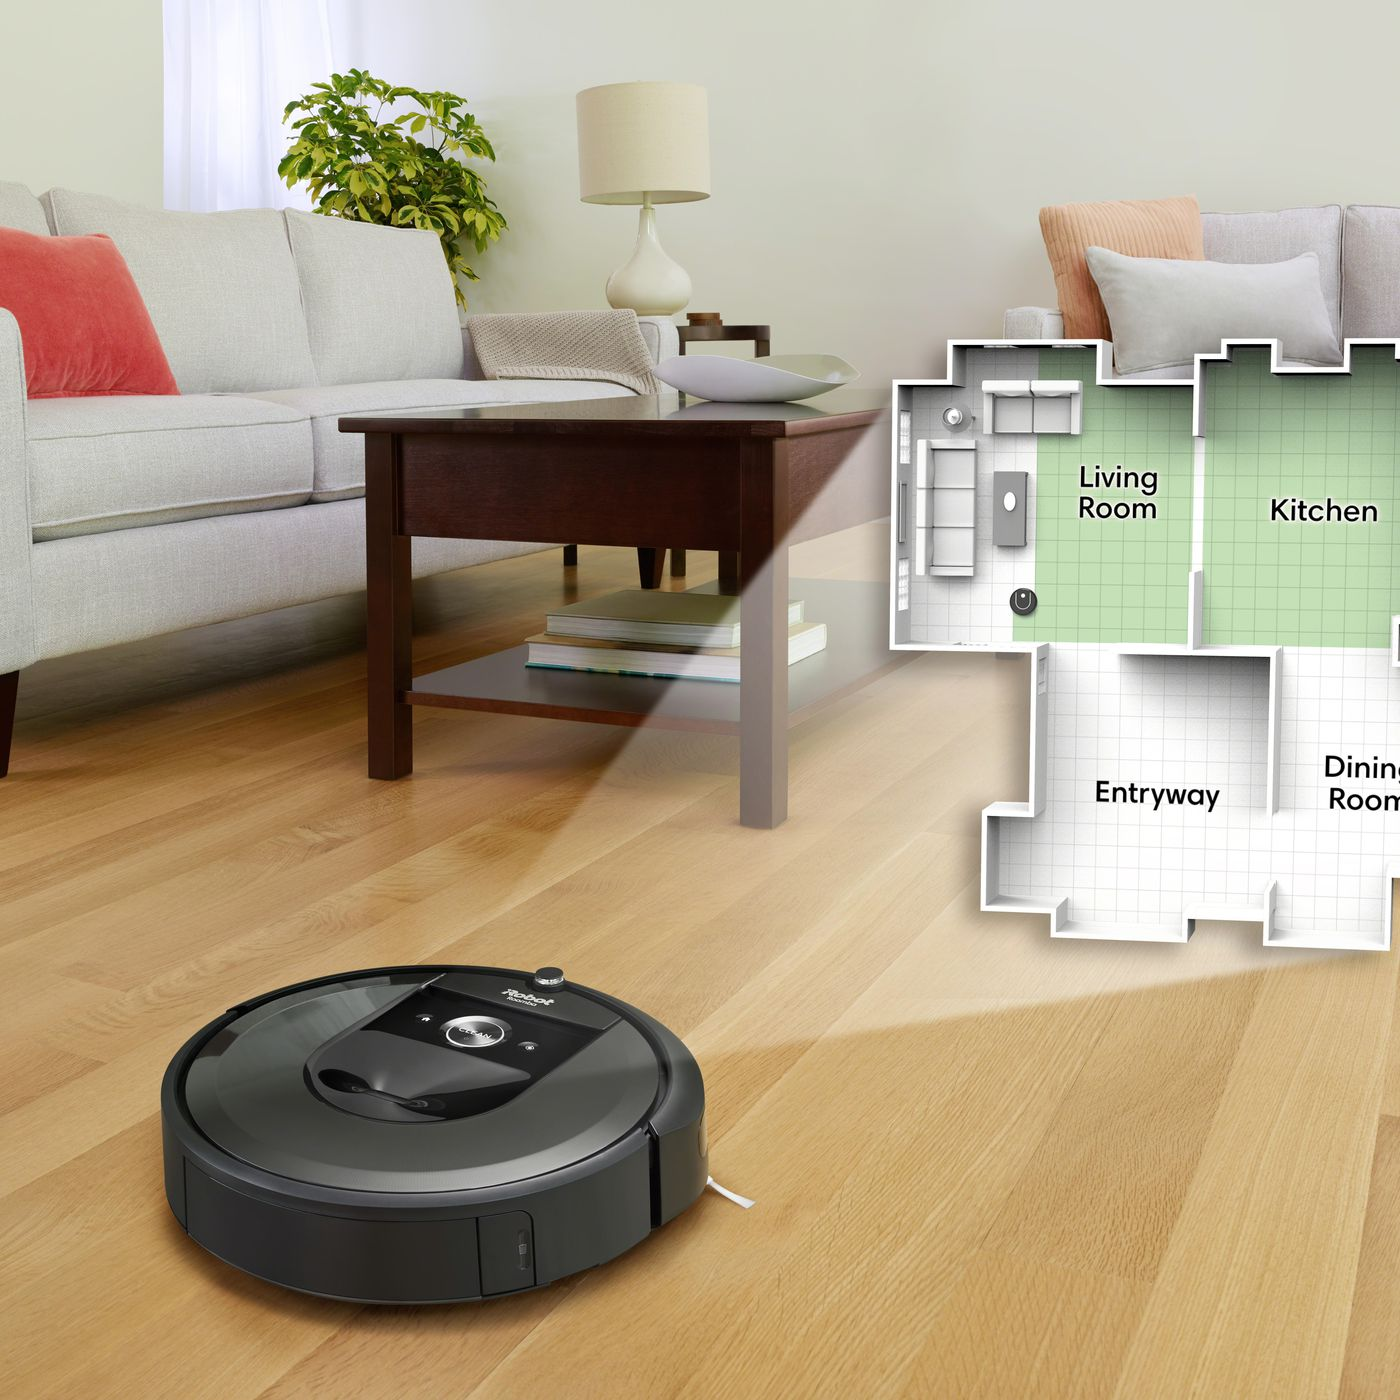 Google wants to improve your smart home with iRobot's room ... on google moon, google goggles, google latitude, yahoo! maps, google chrome, google home page design, google earth street view, route planning software, google sky, google search, google mars, google home plans, google earth dead body, tomtom home maps, google translate, google voice, google earth oahu, bing maps, web mapping, google map maker, google home work, google street view, google earth, search maps, google docs, satellite map images with missing or unclear data,